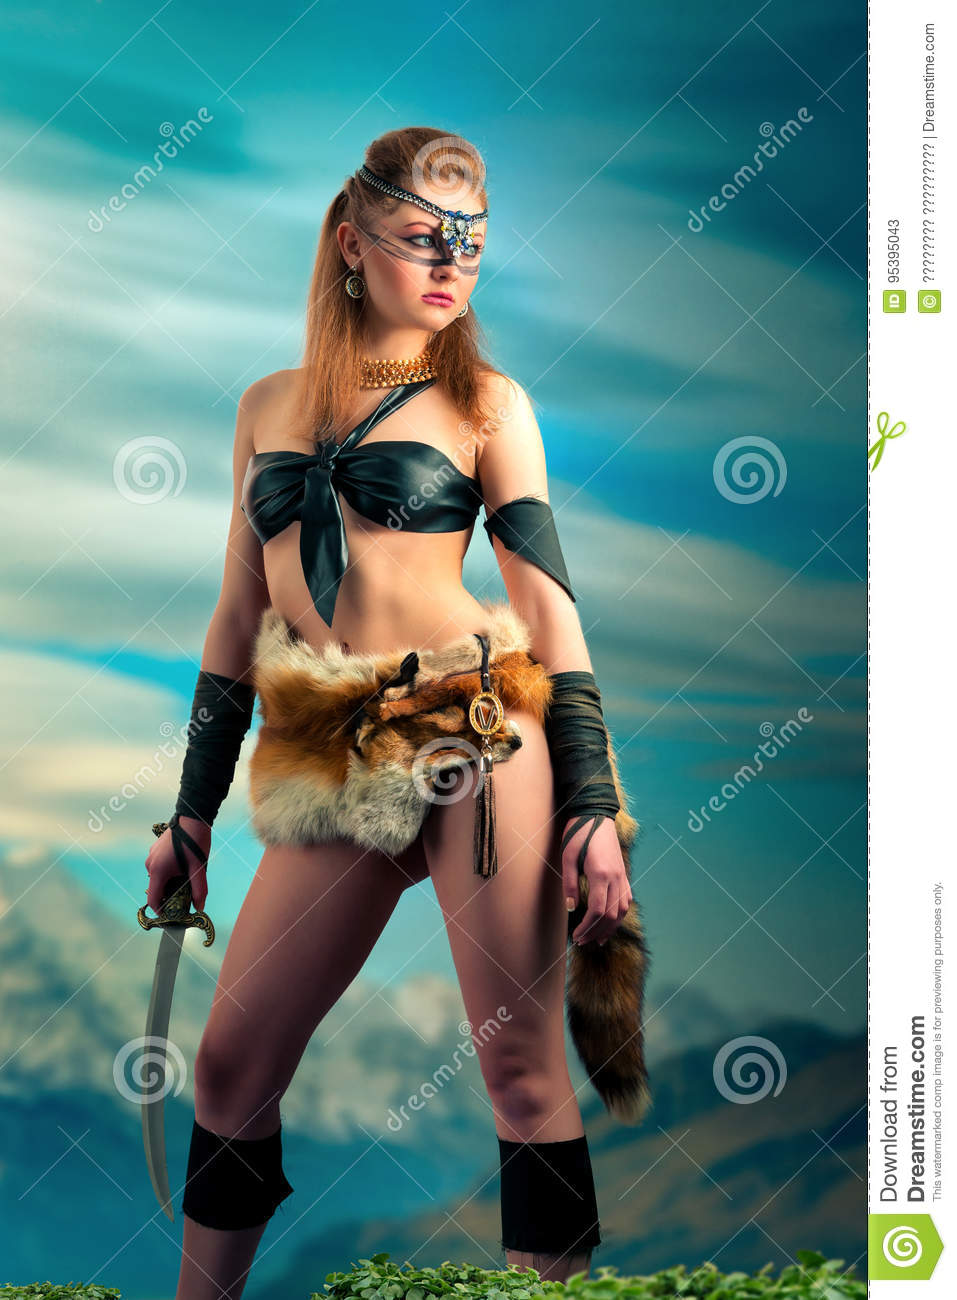 Amazon Woman Stock Images Download 3 180 Royalty Free Photos